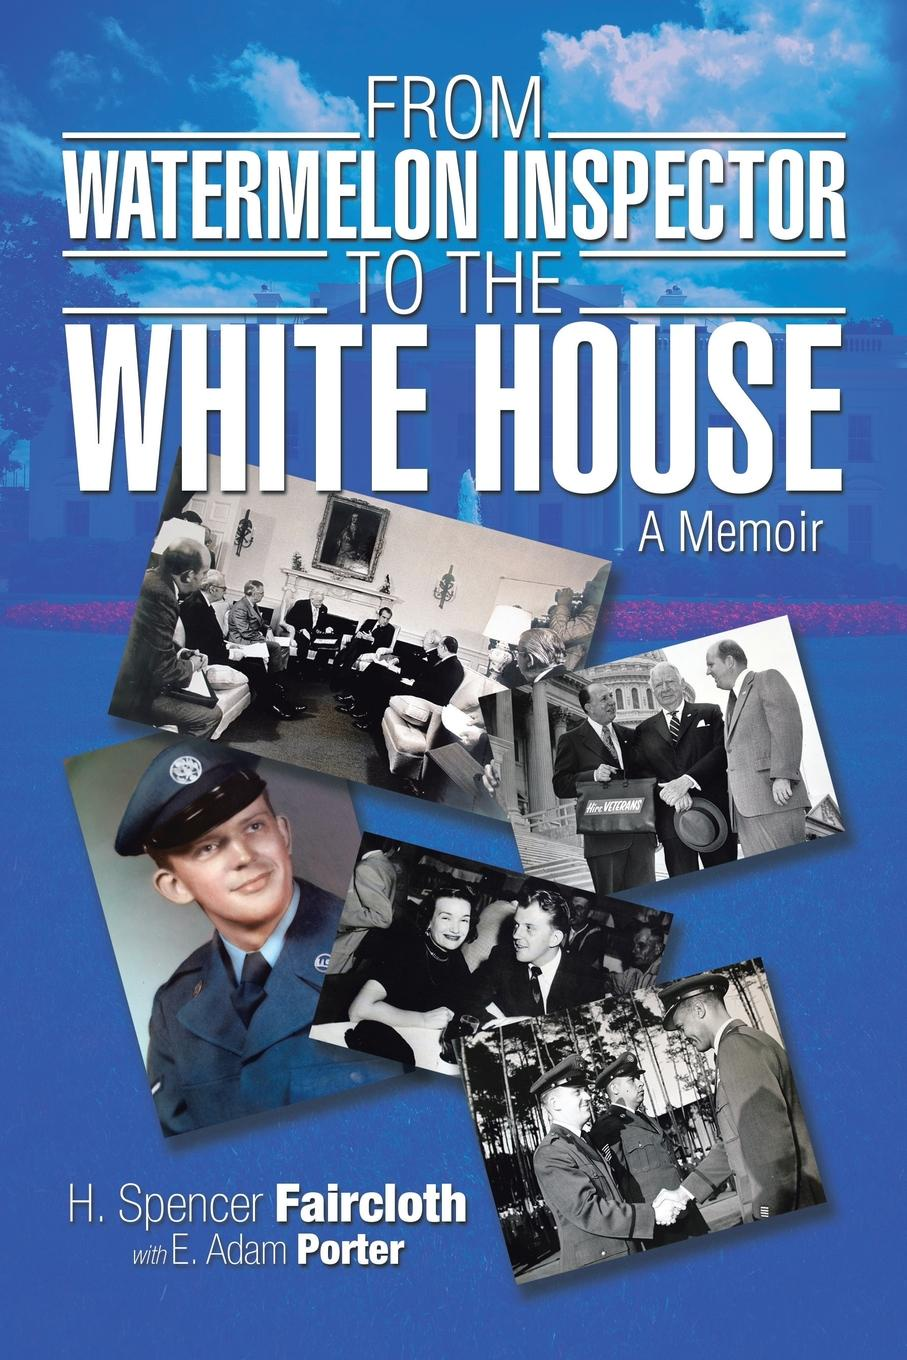 H. Spencer Faircloth From Watermelon Inspector to the White House. A Memoir the inspector selfie